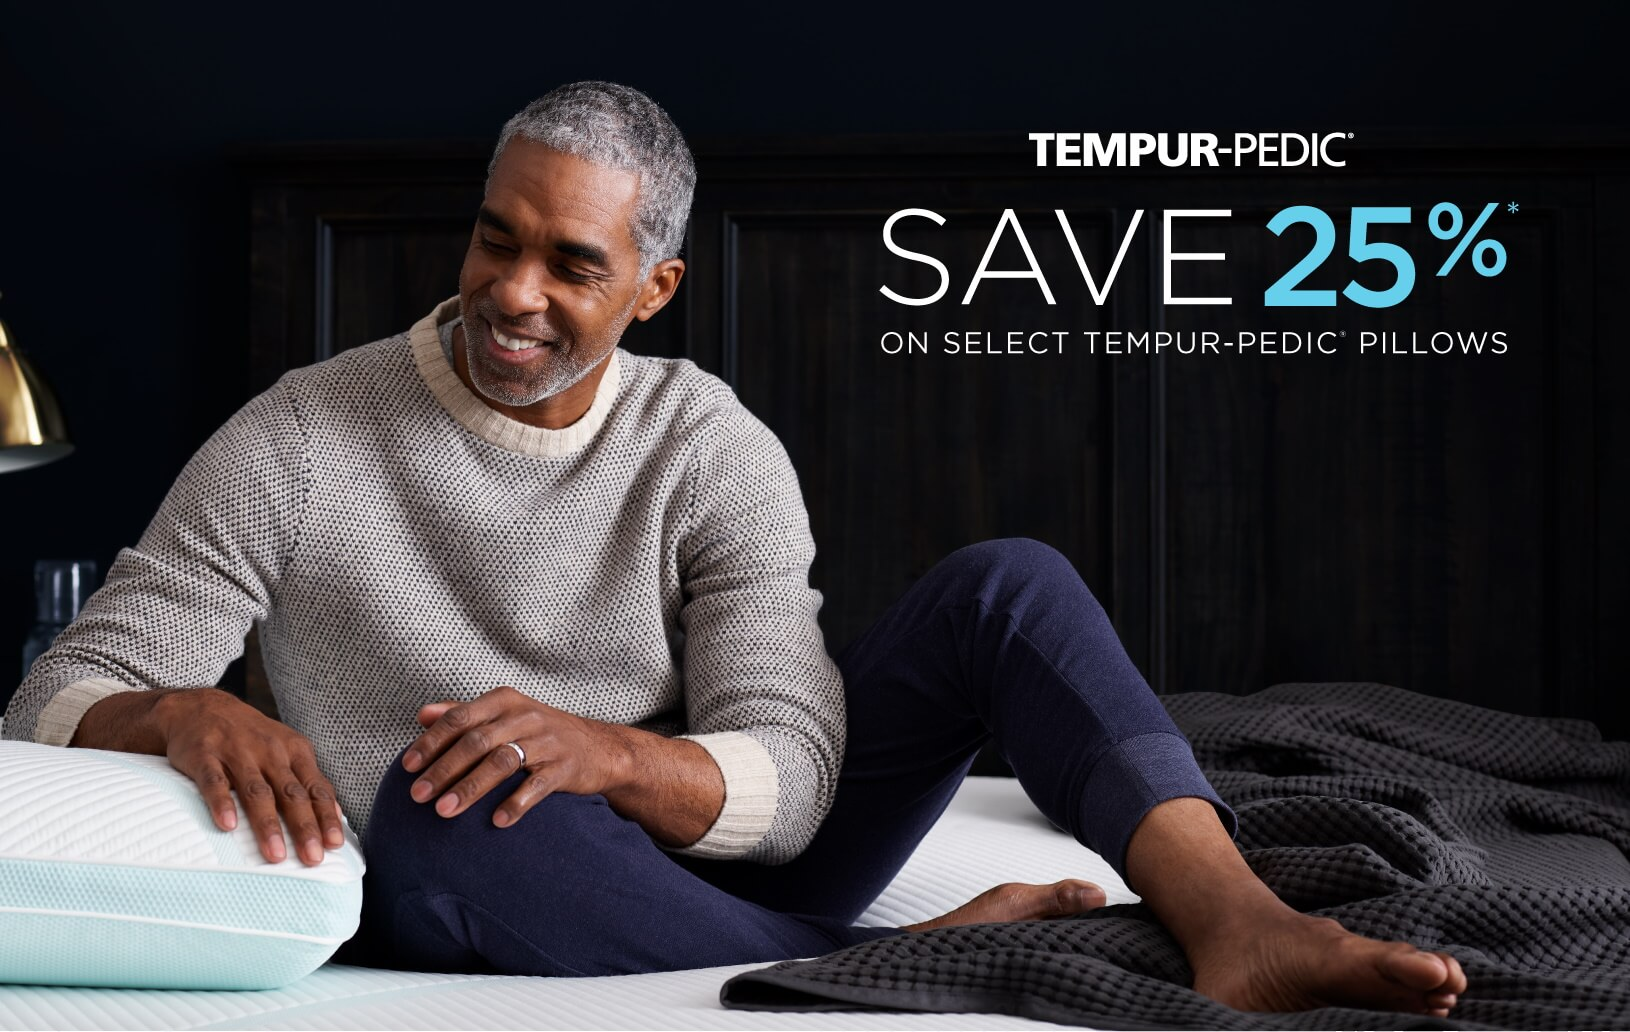 Tempur-Pedic: Save 25% on select Tempur-Pedic pillows